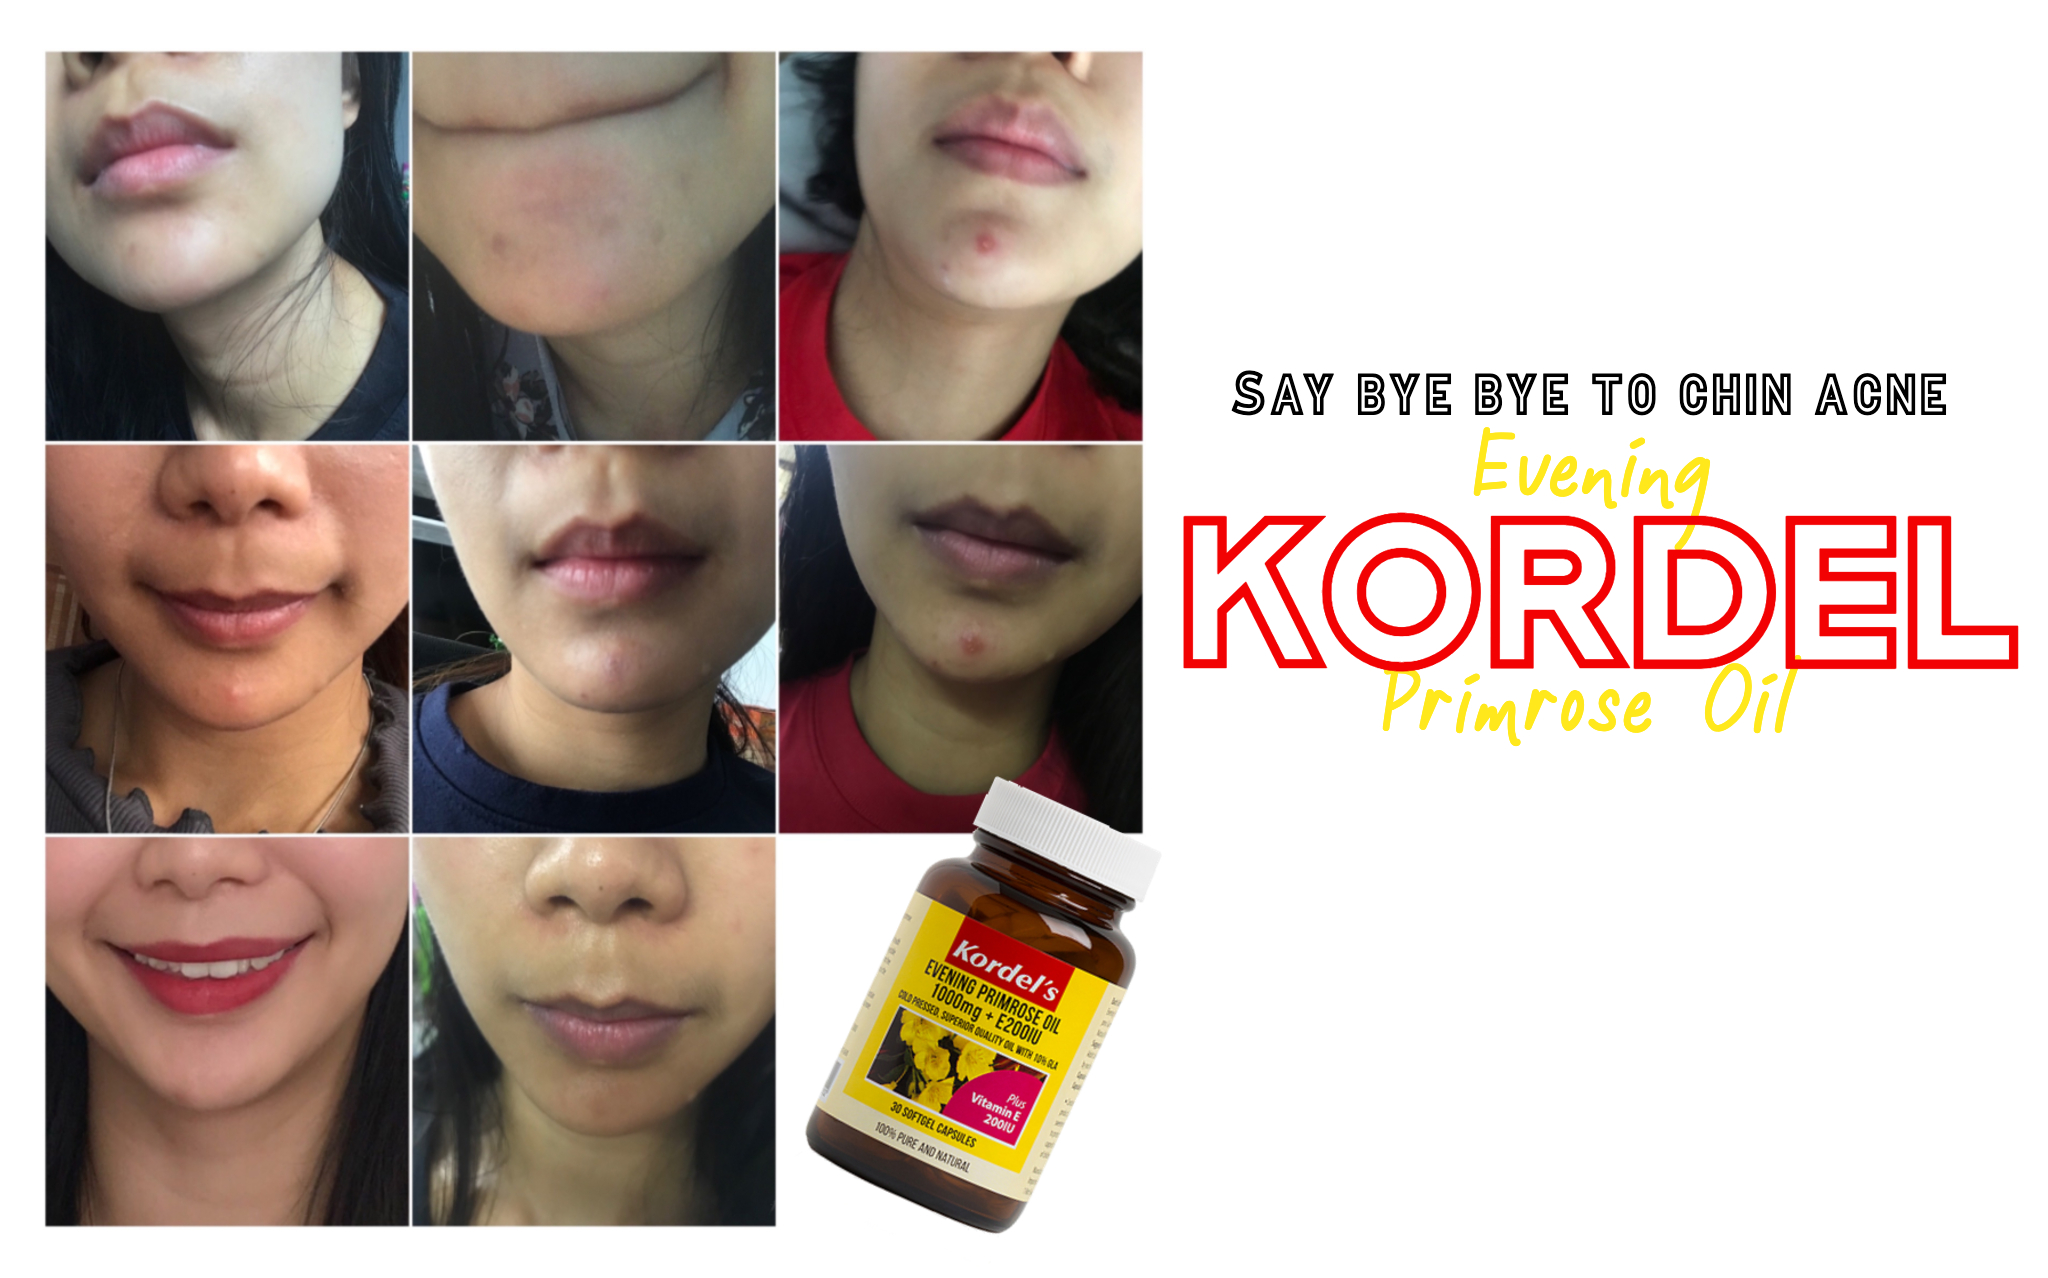 kordel evening primrose oil hormonal chin acne cure treatment